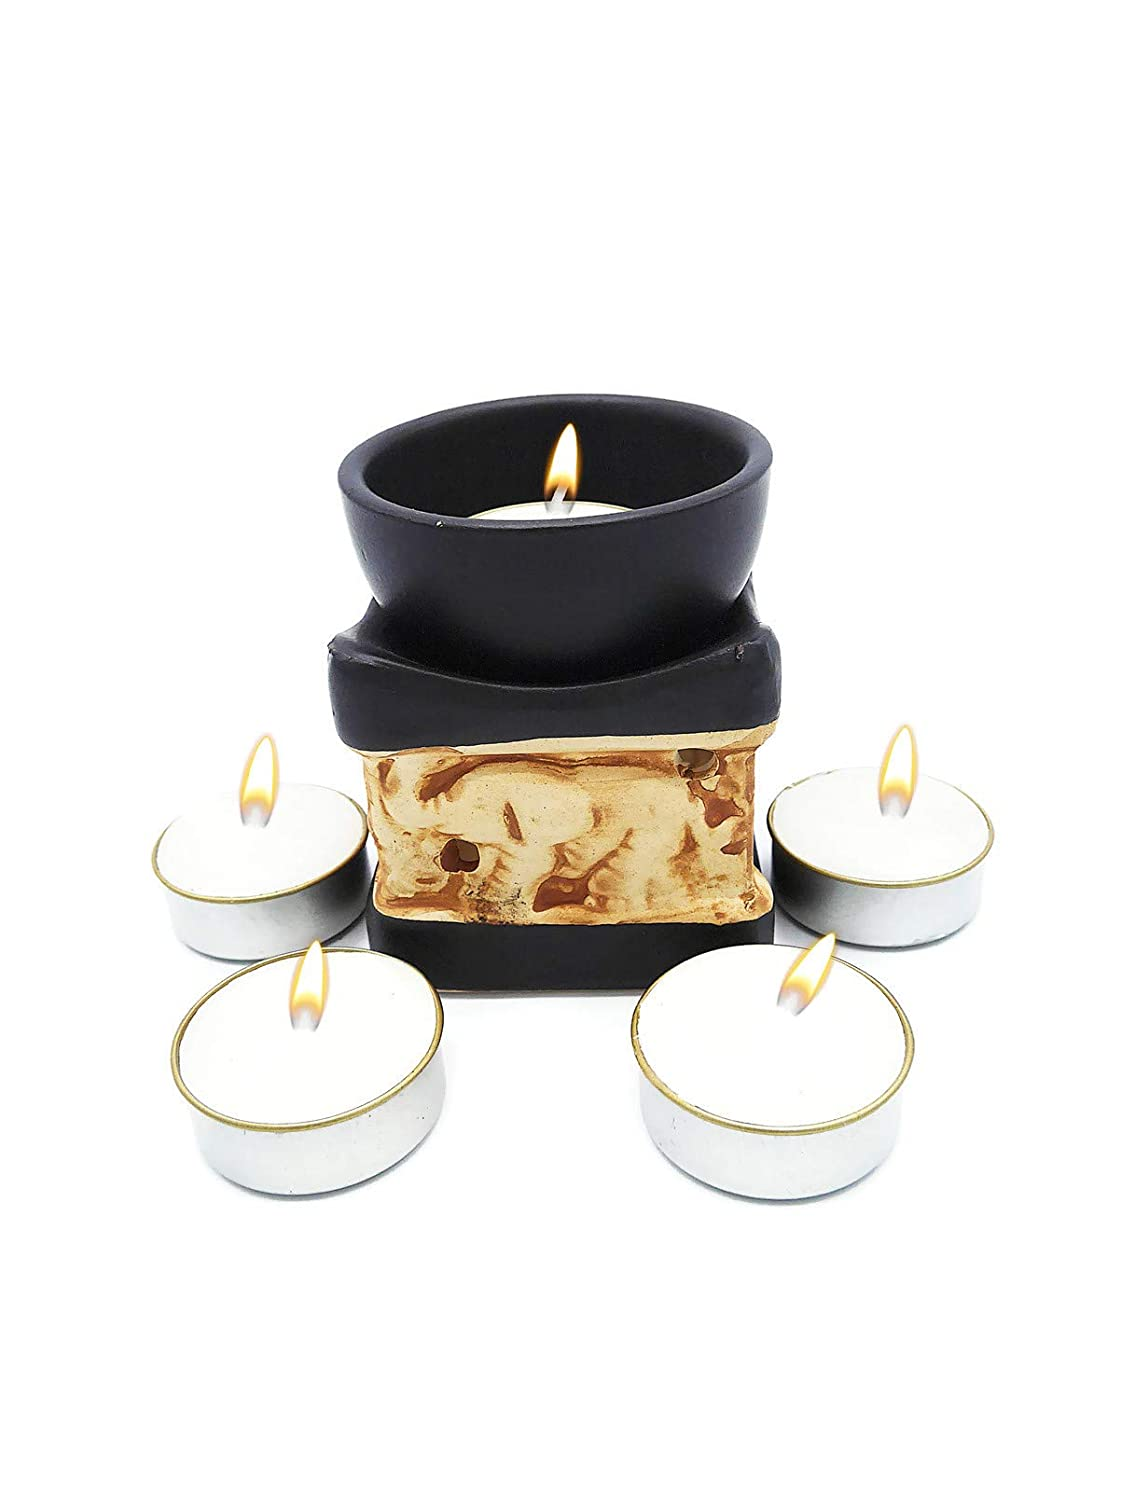 Elephant Essential Oil Burner Tea Light Candle Holder for Home Decoration & Aromatherapy *FREE Scented Tea Light Candle